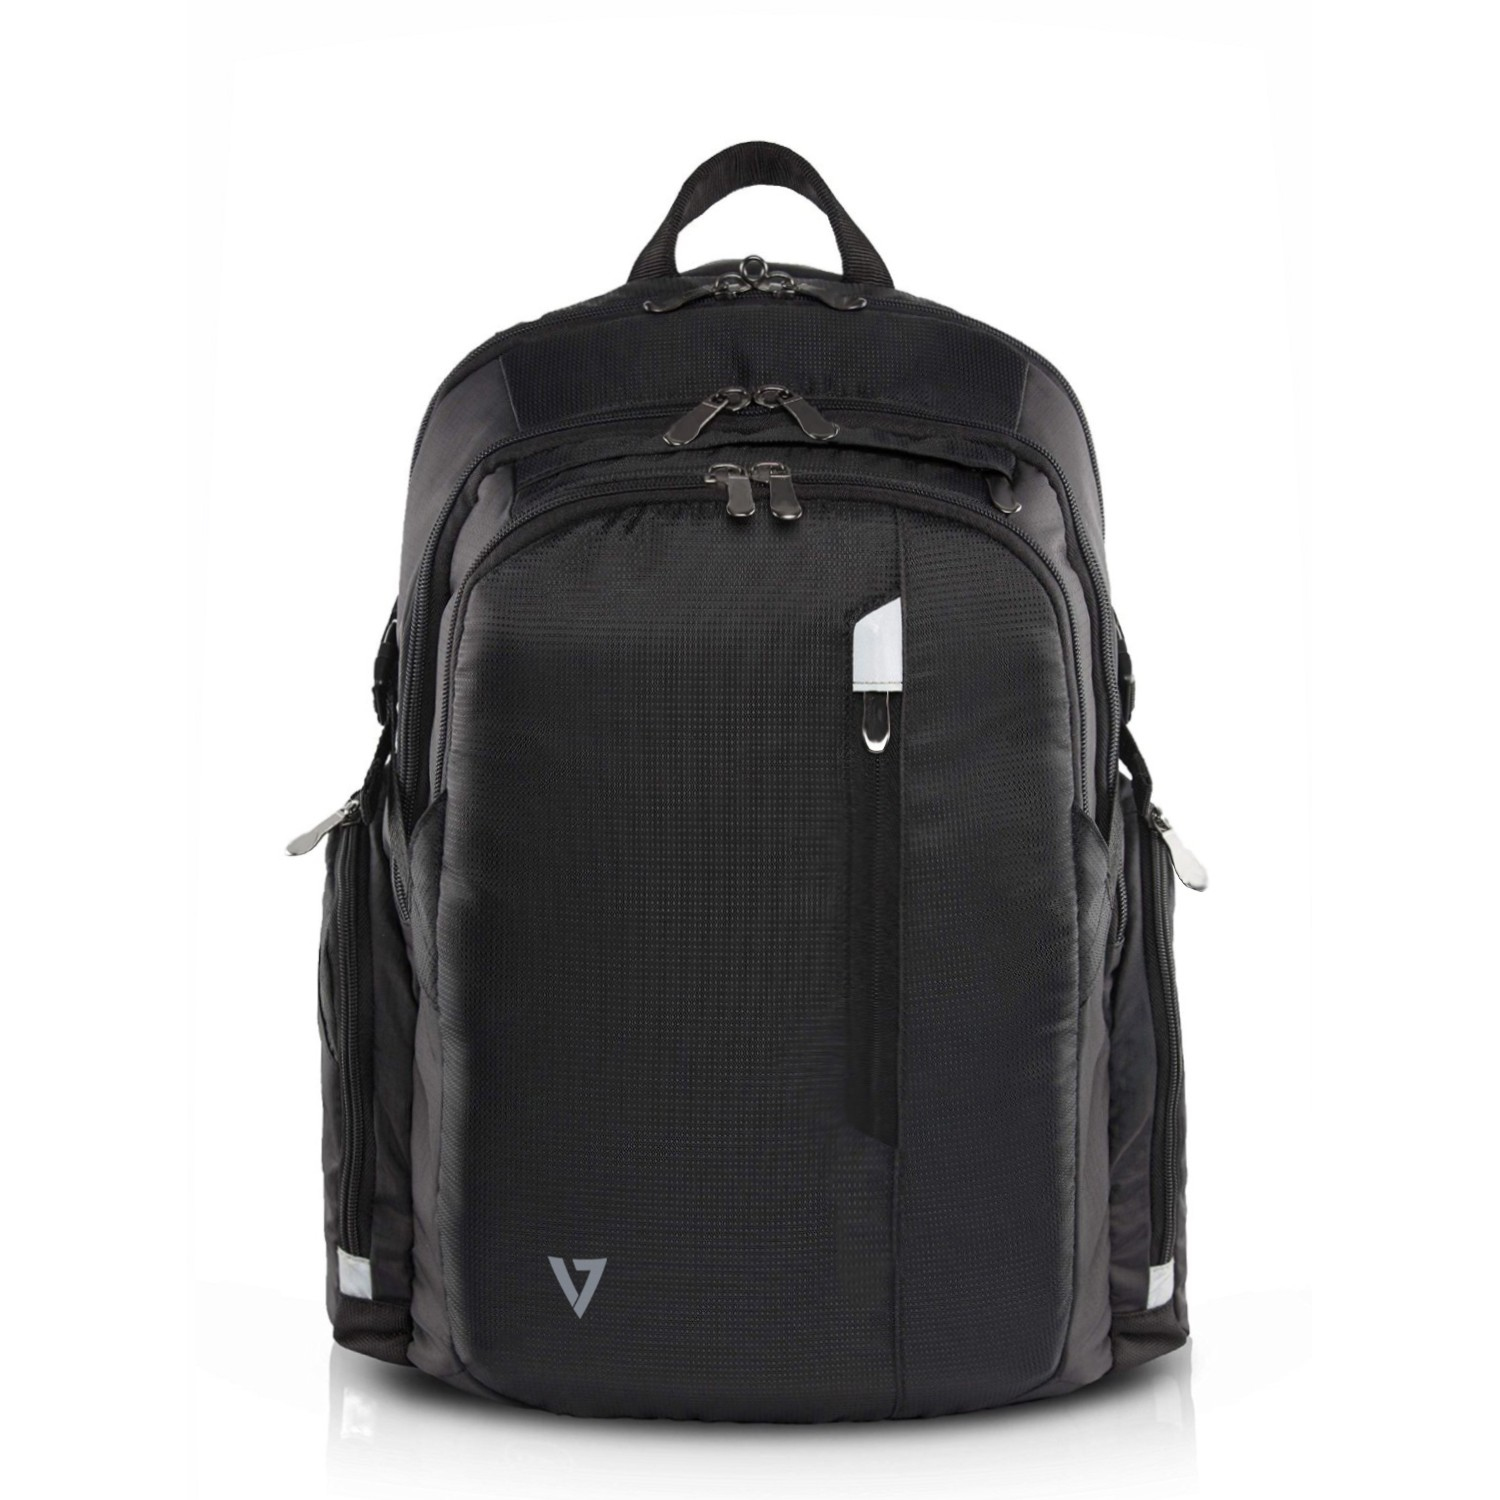 V7 - Bags                        Backpack Elite 15.6in Black         Water Res/air Flow/travel Strap     Cbpx1-9e